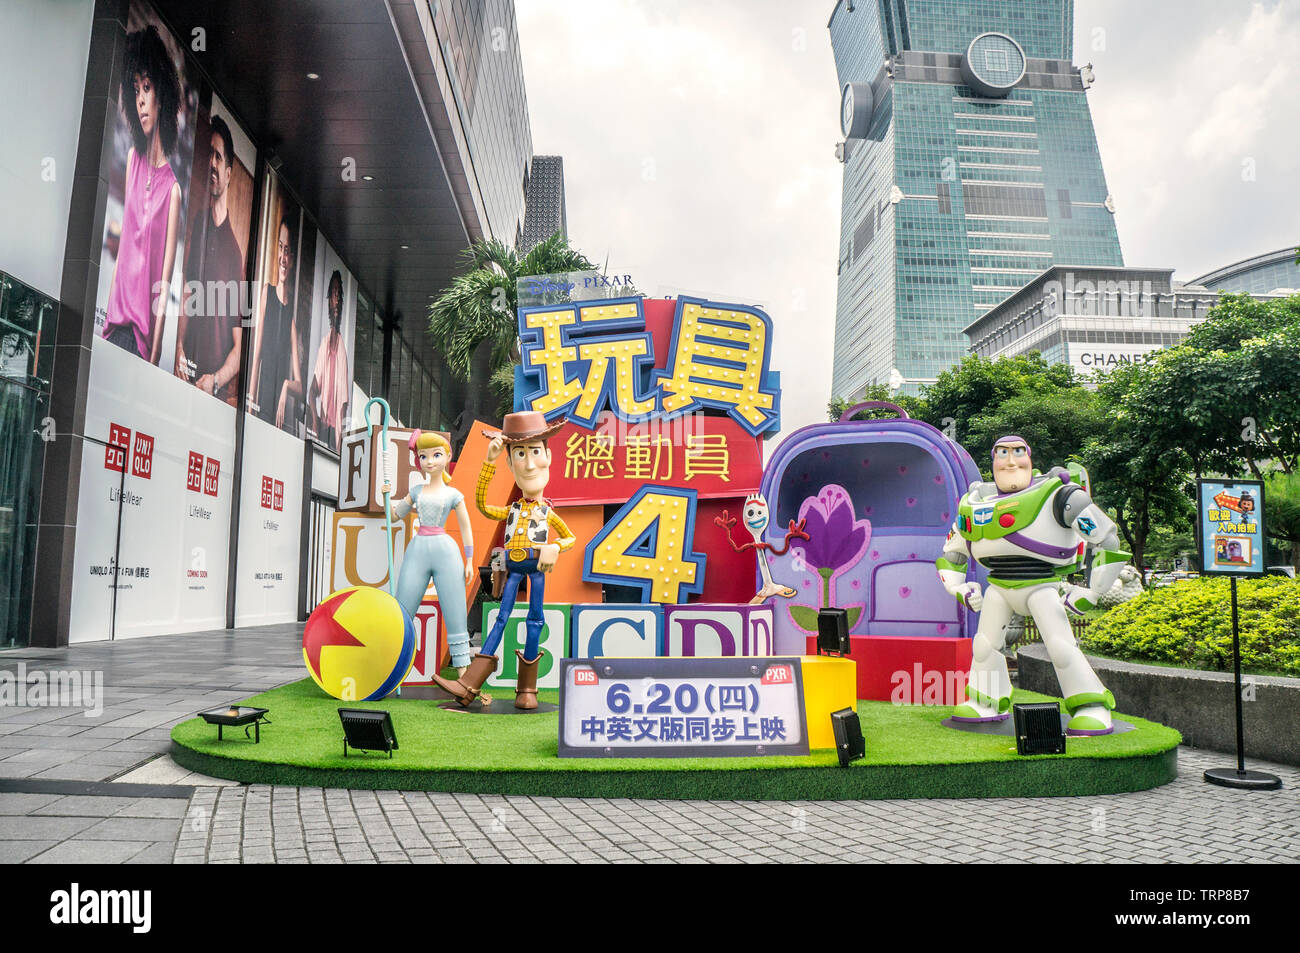 Taipei, Taiwan - June 6, 2019: Advertising decoration for the movie Toy Story 4 and displays at outdoor to promote the movie, Xinyi district of Taipe Stock Photo